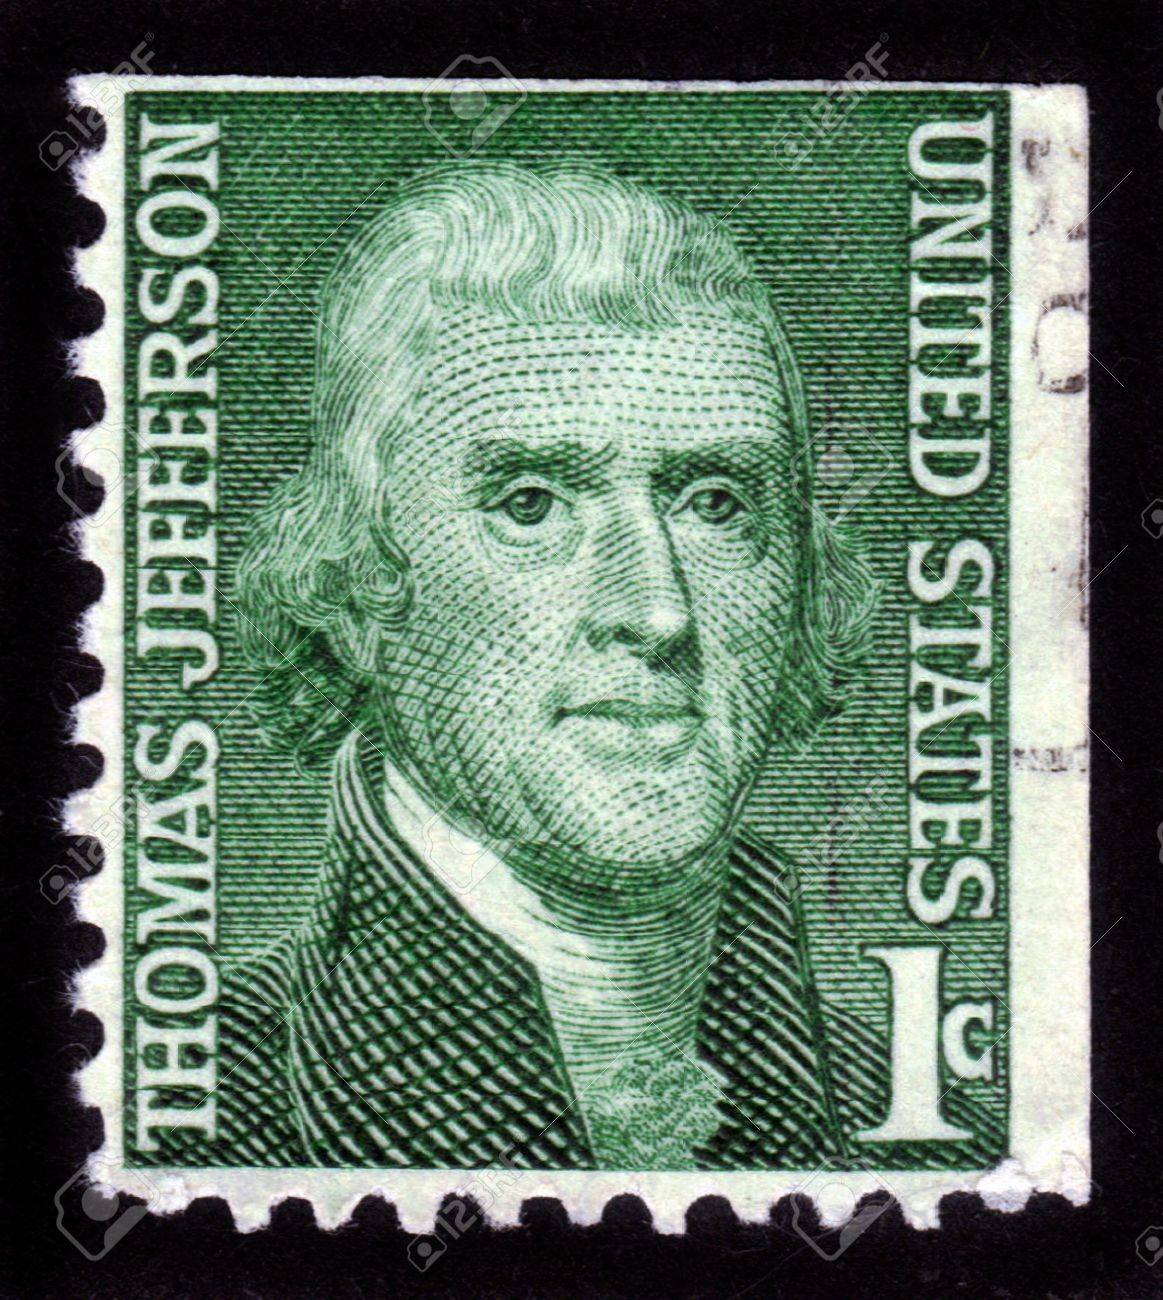 USA - CIRCA 1950: A stamp shows image portrait Thomas Jefferson was the third President of the U S A, the principal author of the Declaration of Independence (1776), circa 1950. Stock Photo - 14296343